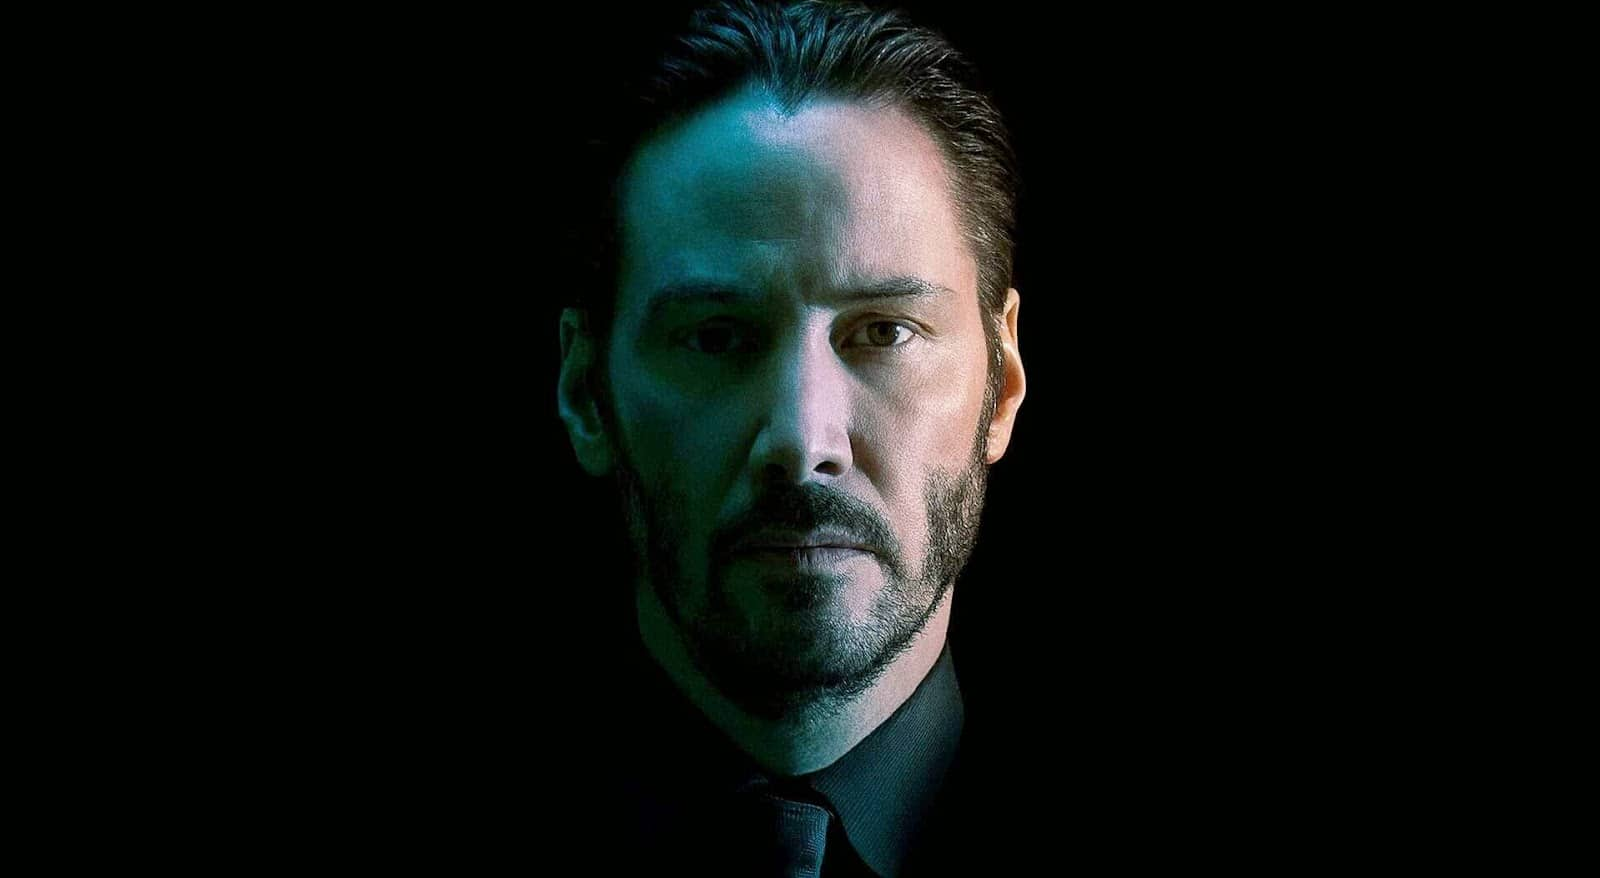 John Wick 2 sequel news